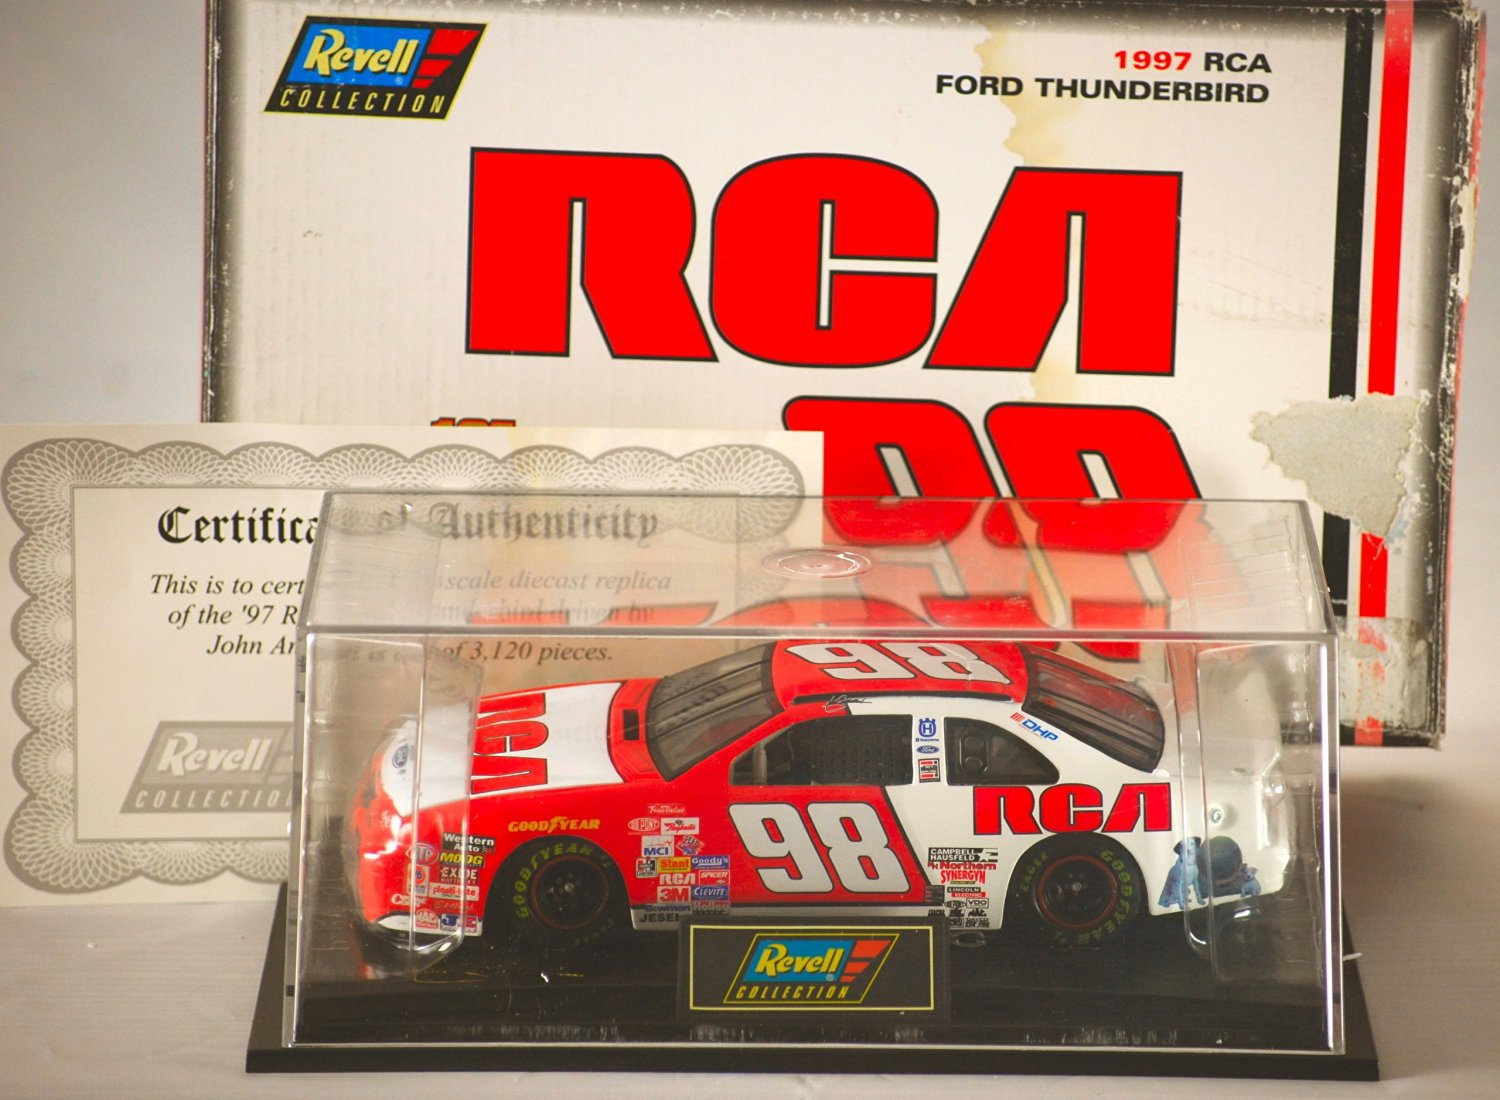 1997 - Revell-Monogram Inc / NASCAR - John Andretti #98 - RCA Car - Ford Thunderbird - 1:24 Scale Die Cast - Display Case & COA - 1 of 3,120 Produced - Rare - Out of Production - Limited Edition - Collectible